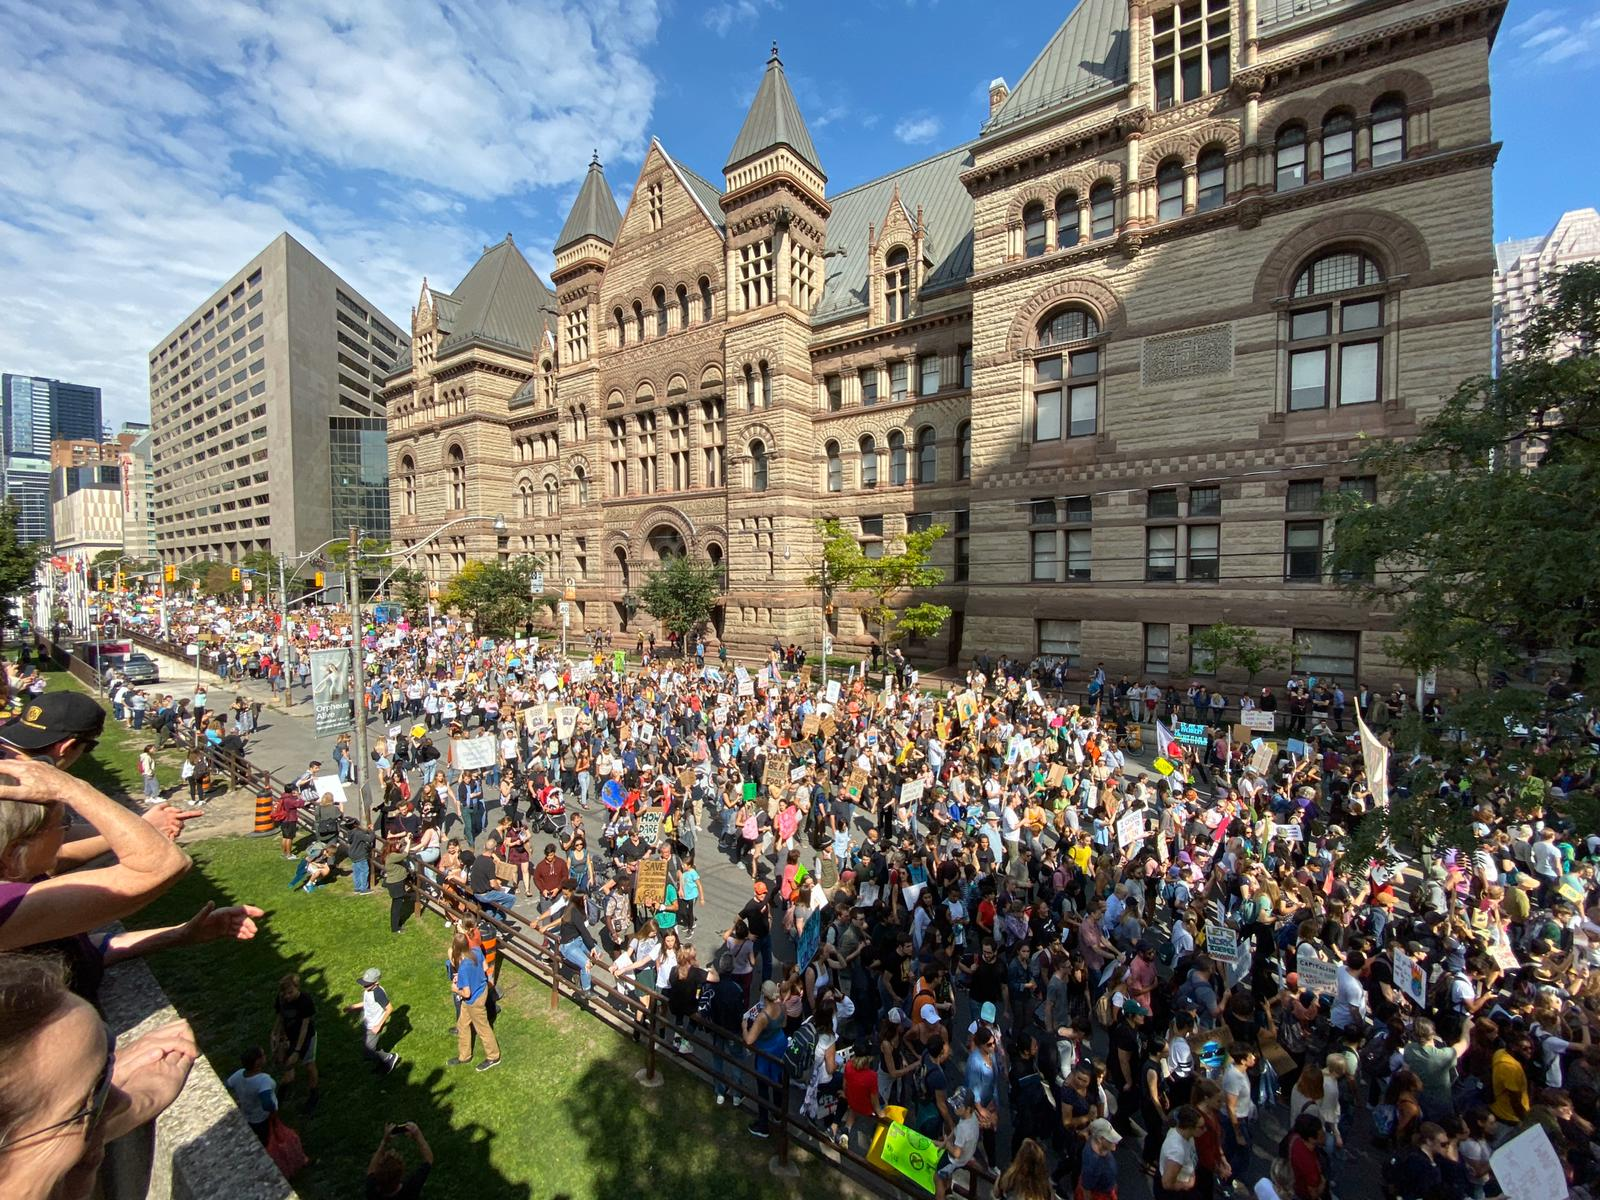 Thousands of Torontonians joined the youth-led Global Climate Strike on September 27th, calling for urgent climate action. Pictured here at Queens Park.